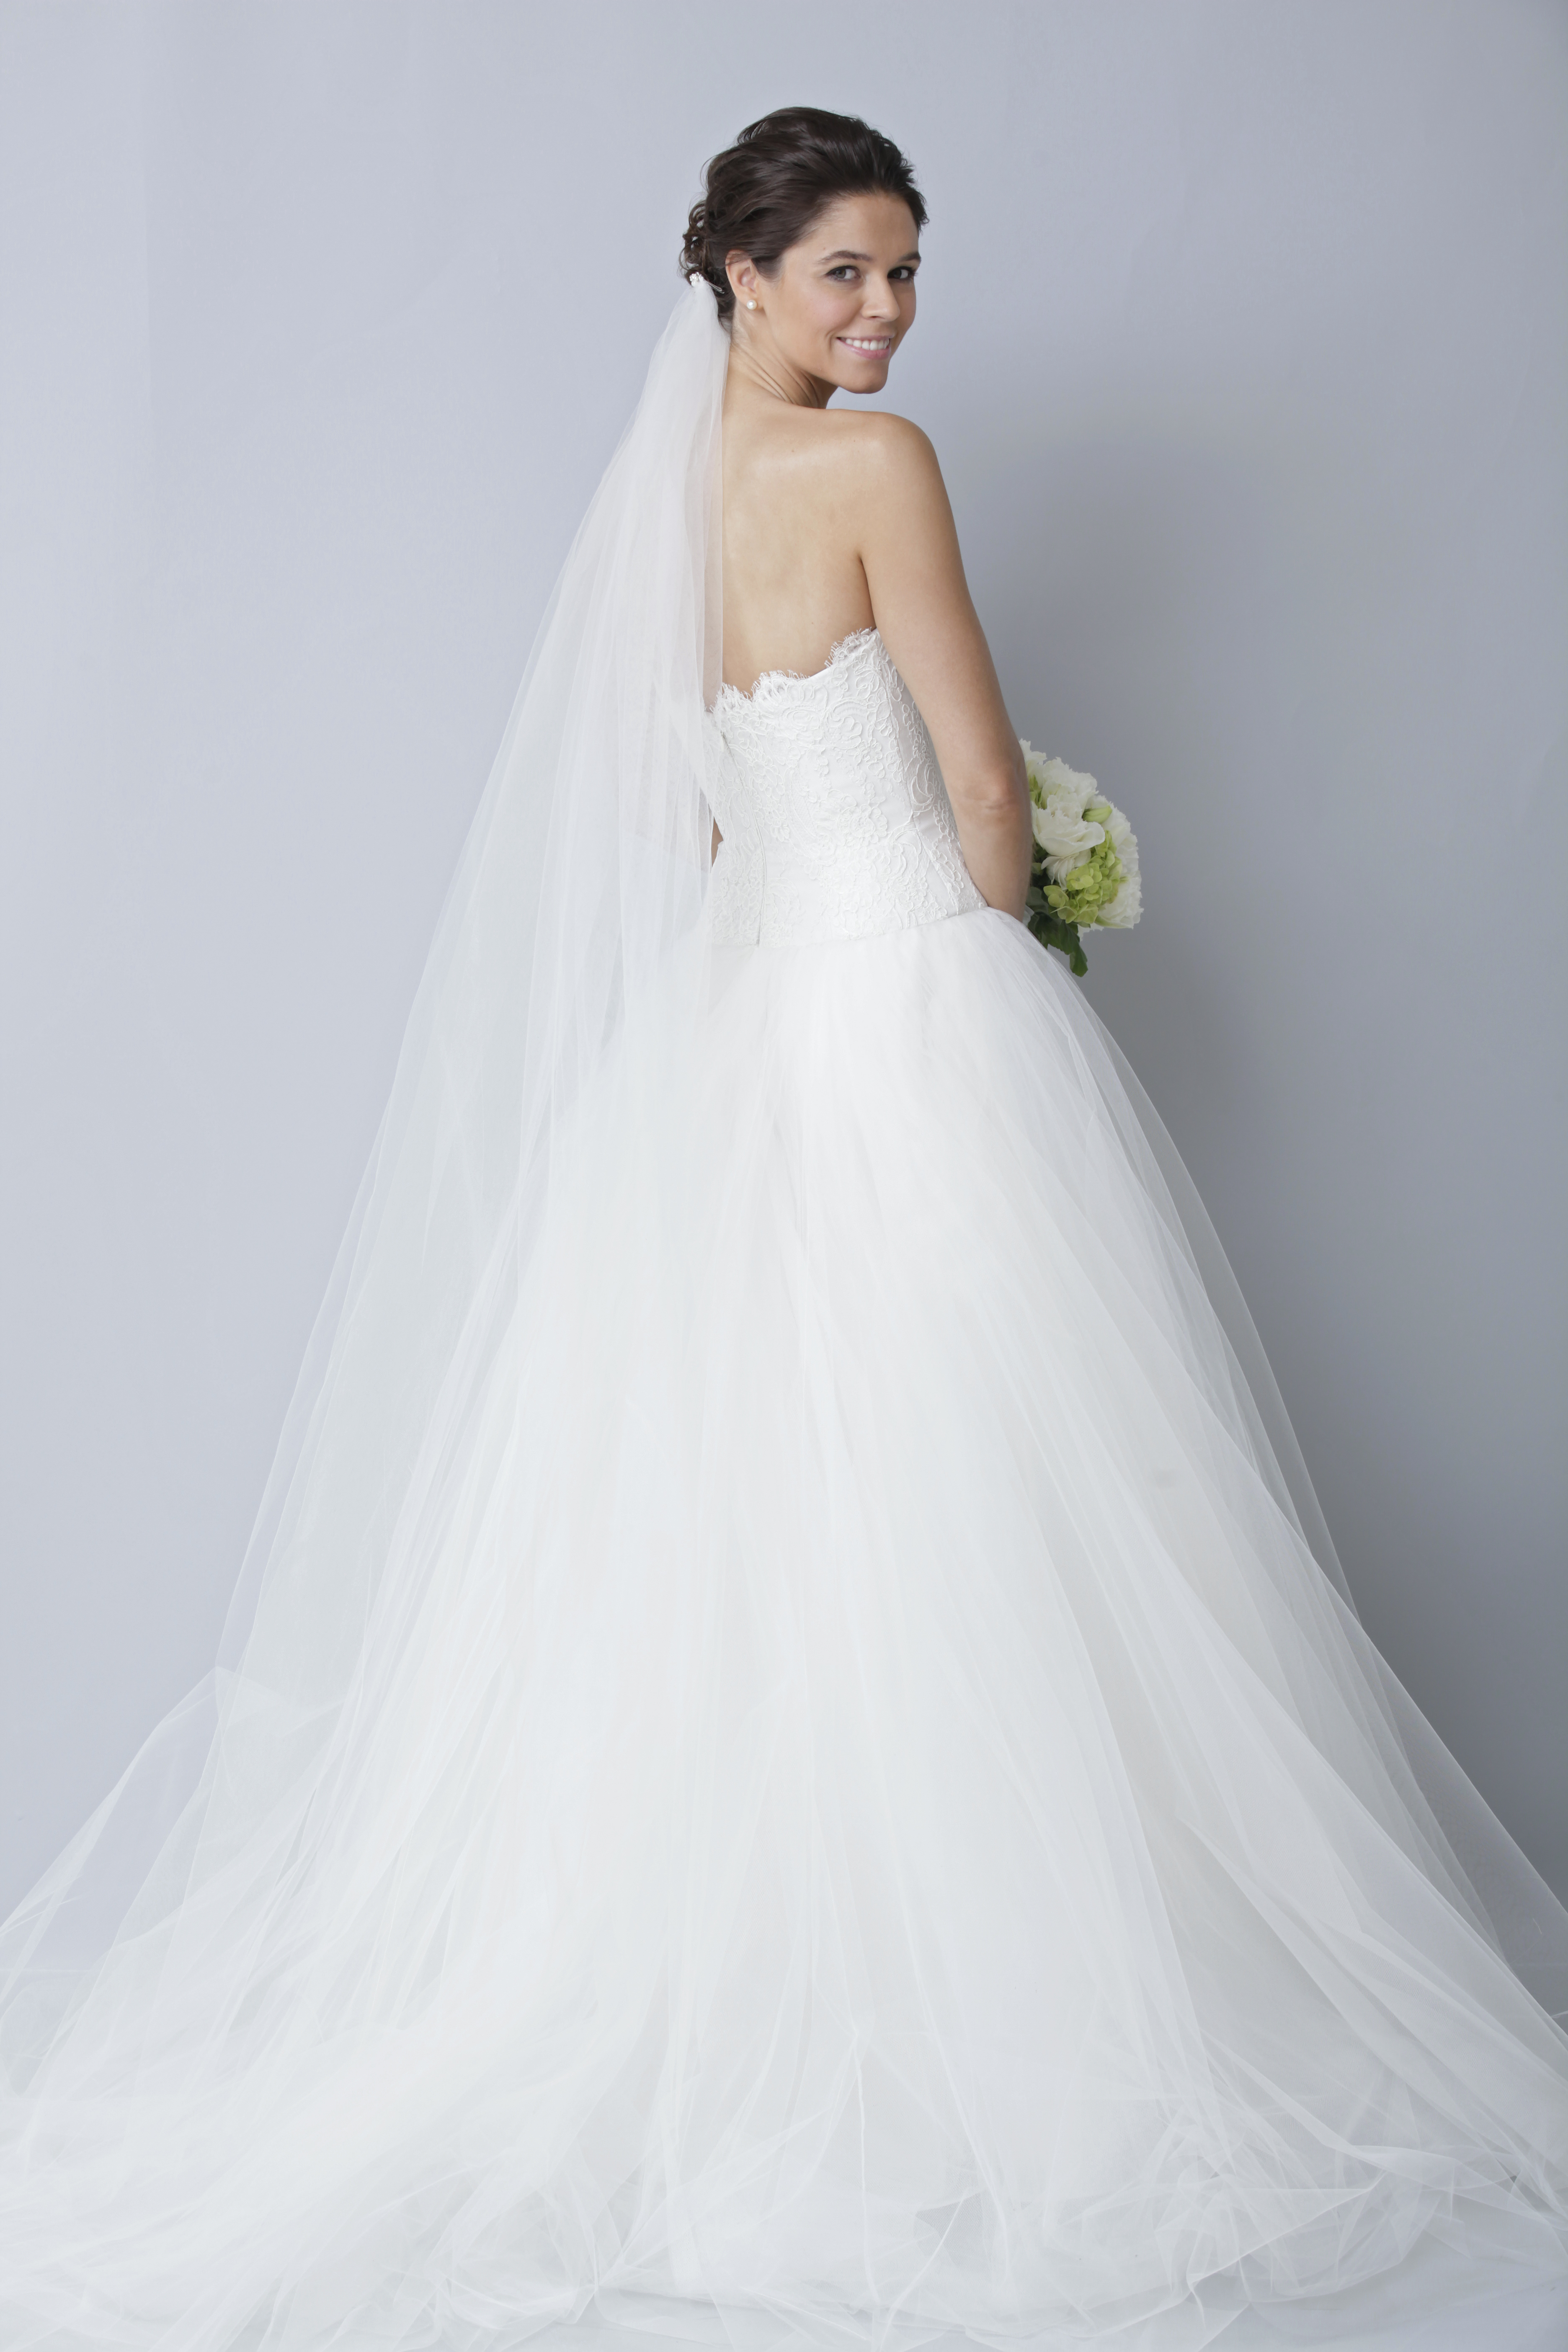 Theia-white-collection-wedding-dress-spring-2013-bridal-gown-890013_3.original